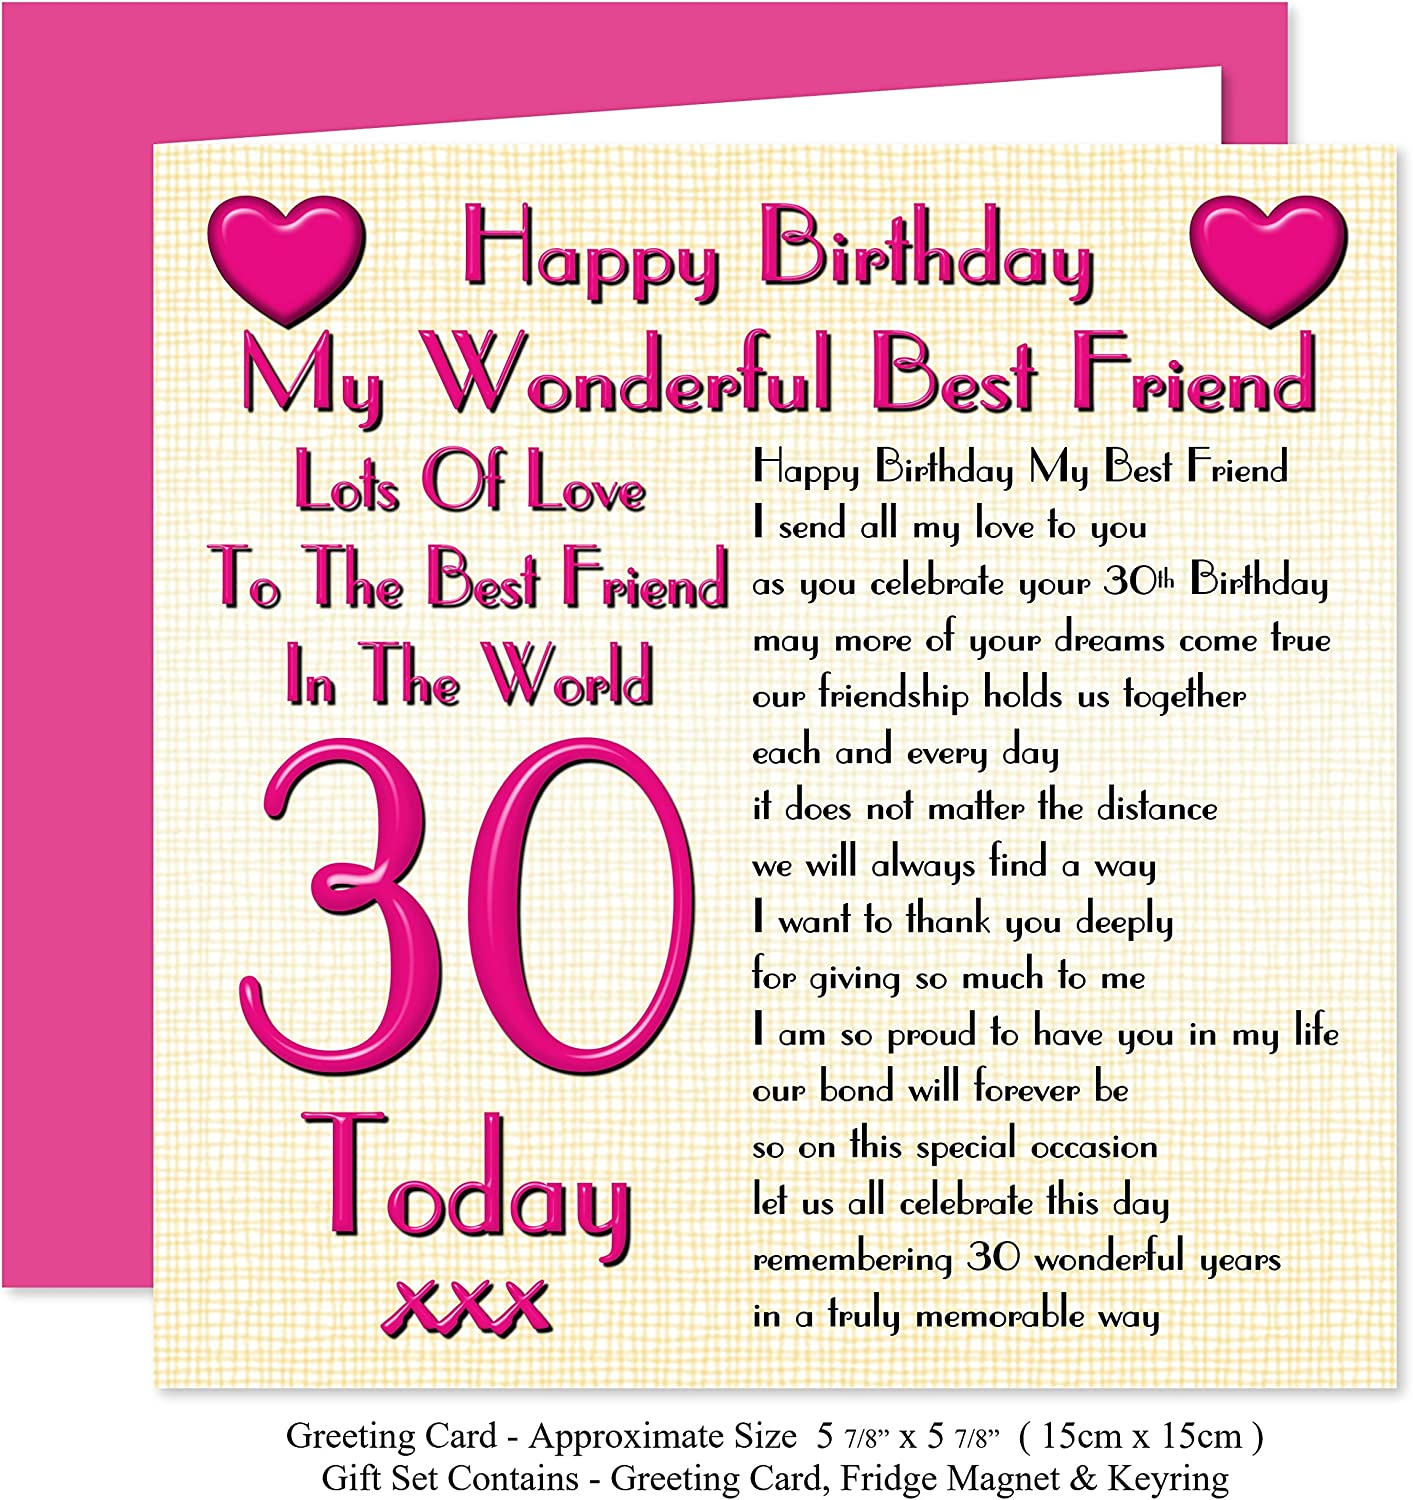 Best Friend 30th Happy Birthday Gift Set Card Keyring Fridge Magnet Present Lots Of Love To The Best Friend In The World 30 Today Amazon Co Uk Office Products